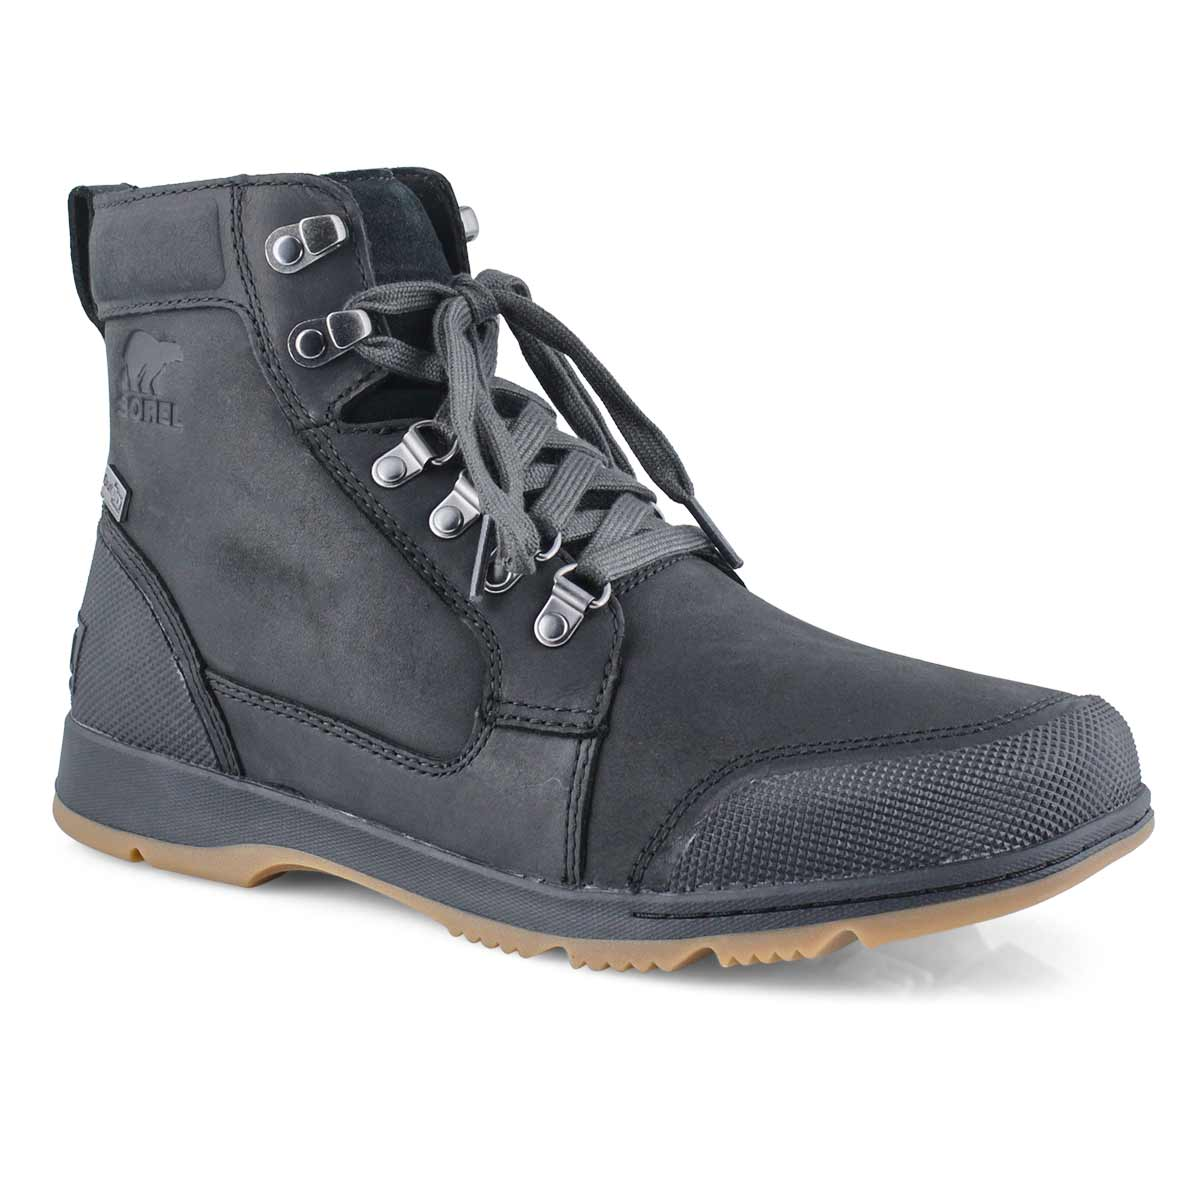 Mns Ankeny II Mid OutDry wtp hiking boot